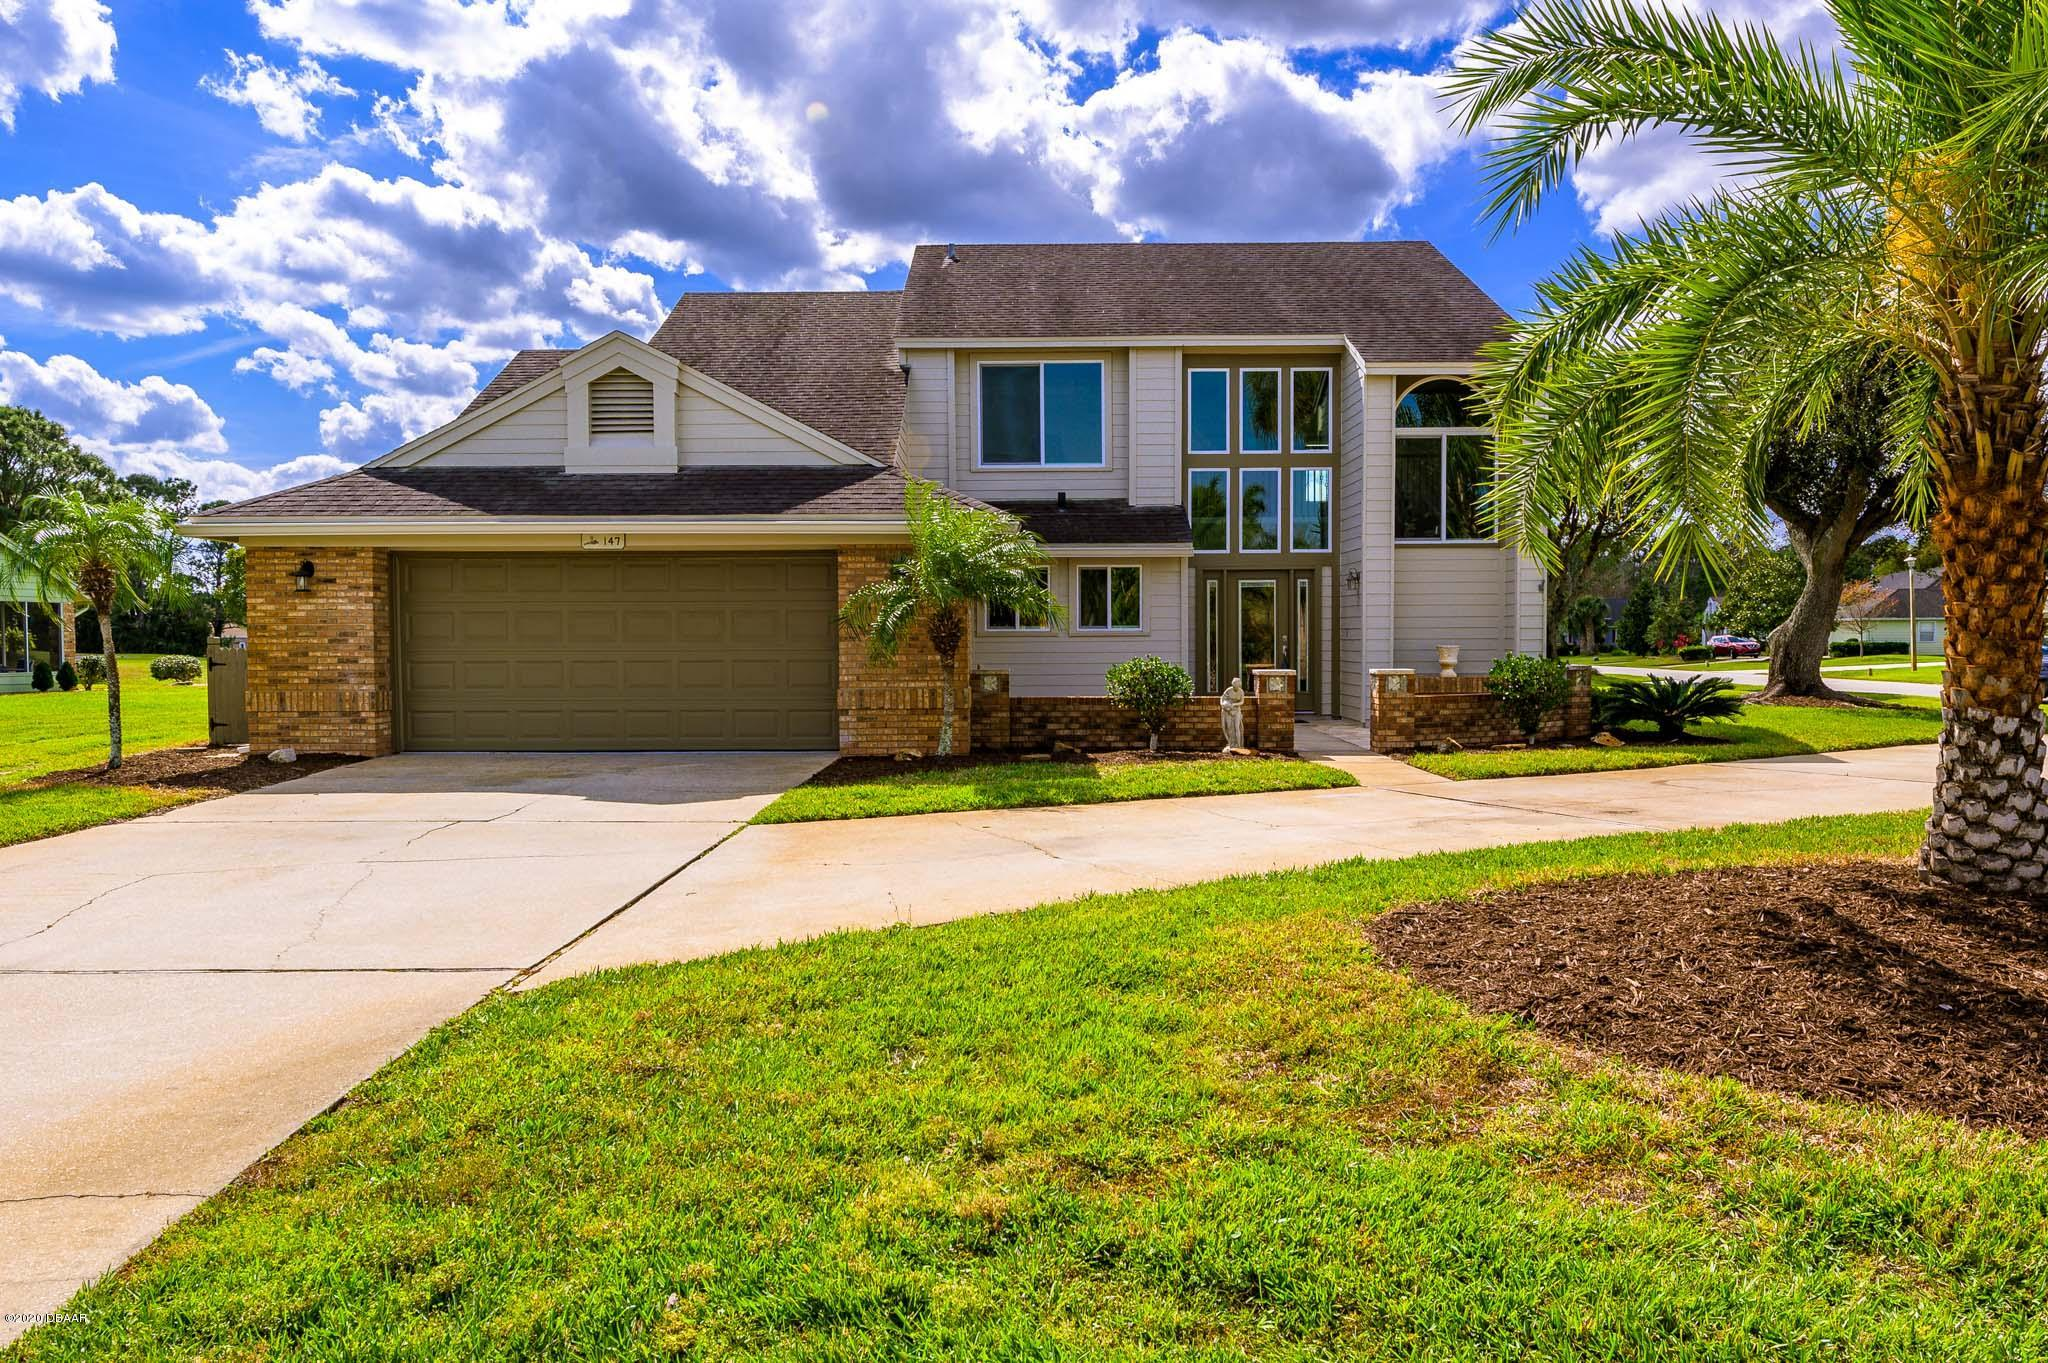 147 Green Heron Daytona Beach - 1